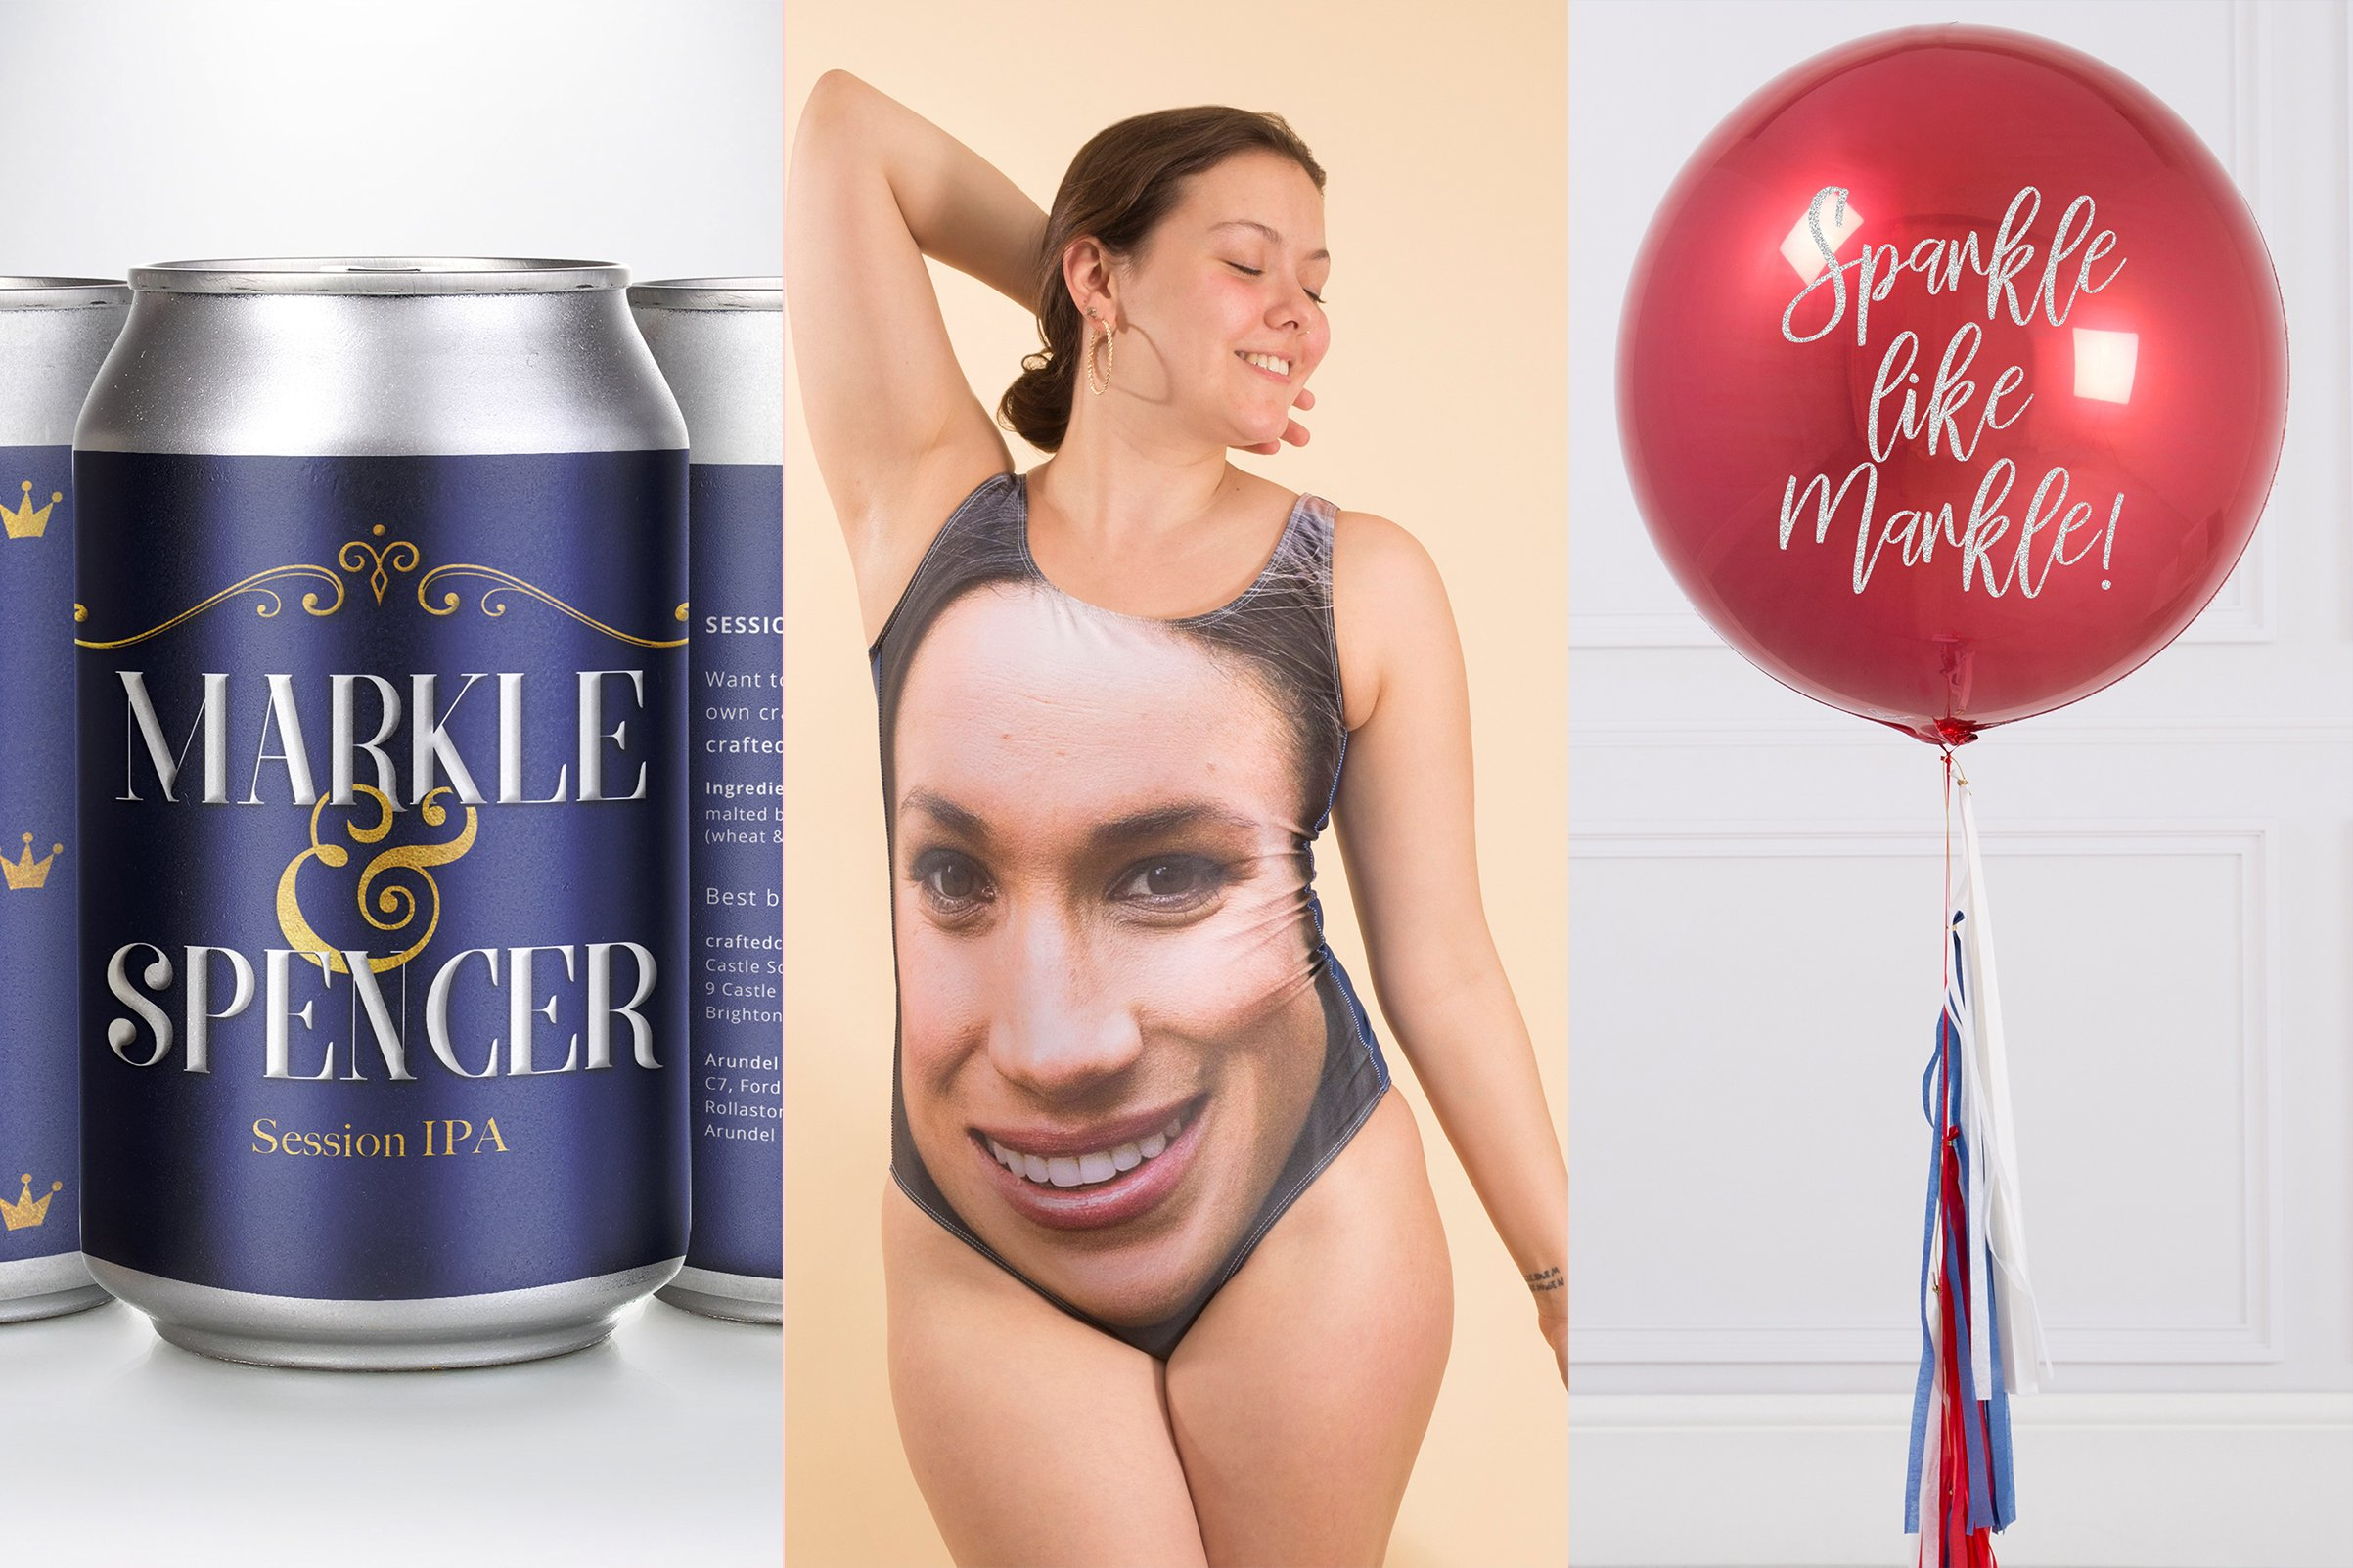 20 Of The Tastiest, Fanciest And Most Bizarre Royal Wedding Souvenirs photo